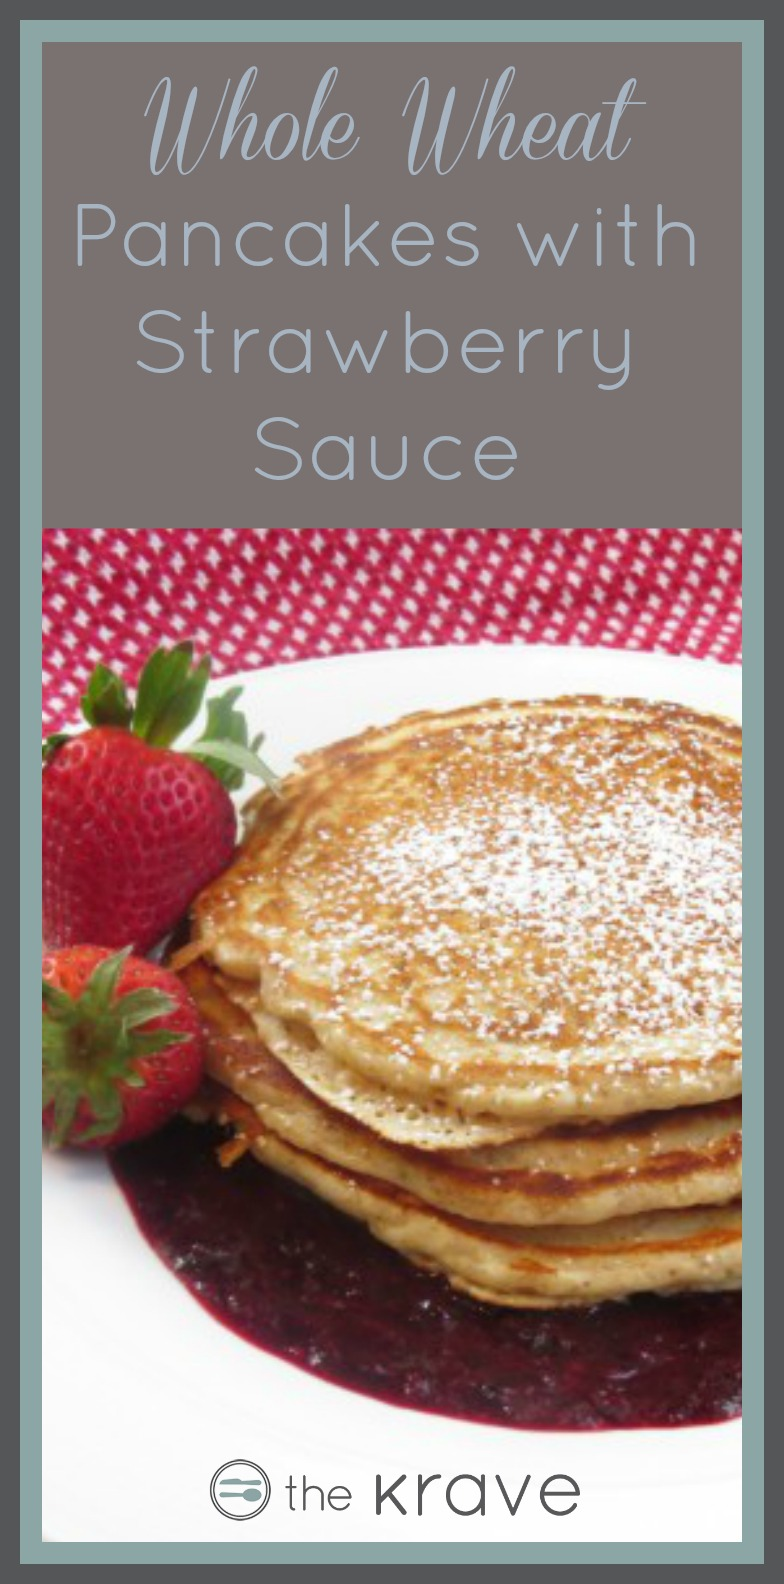 Whole Wheat Pancakes with Strawberry Sauce - The Krave